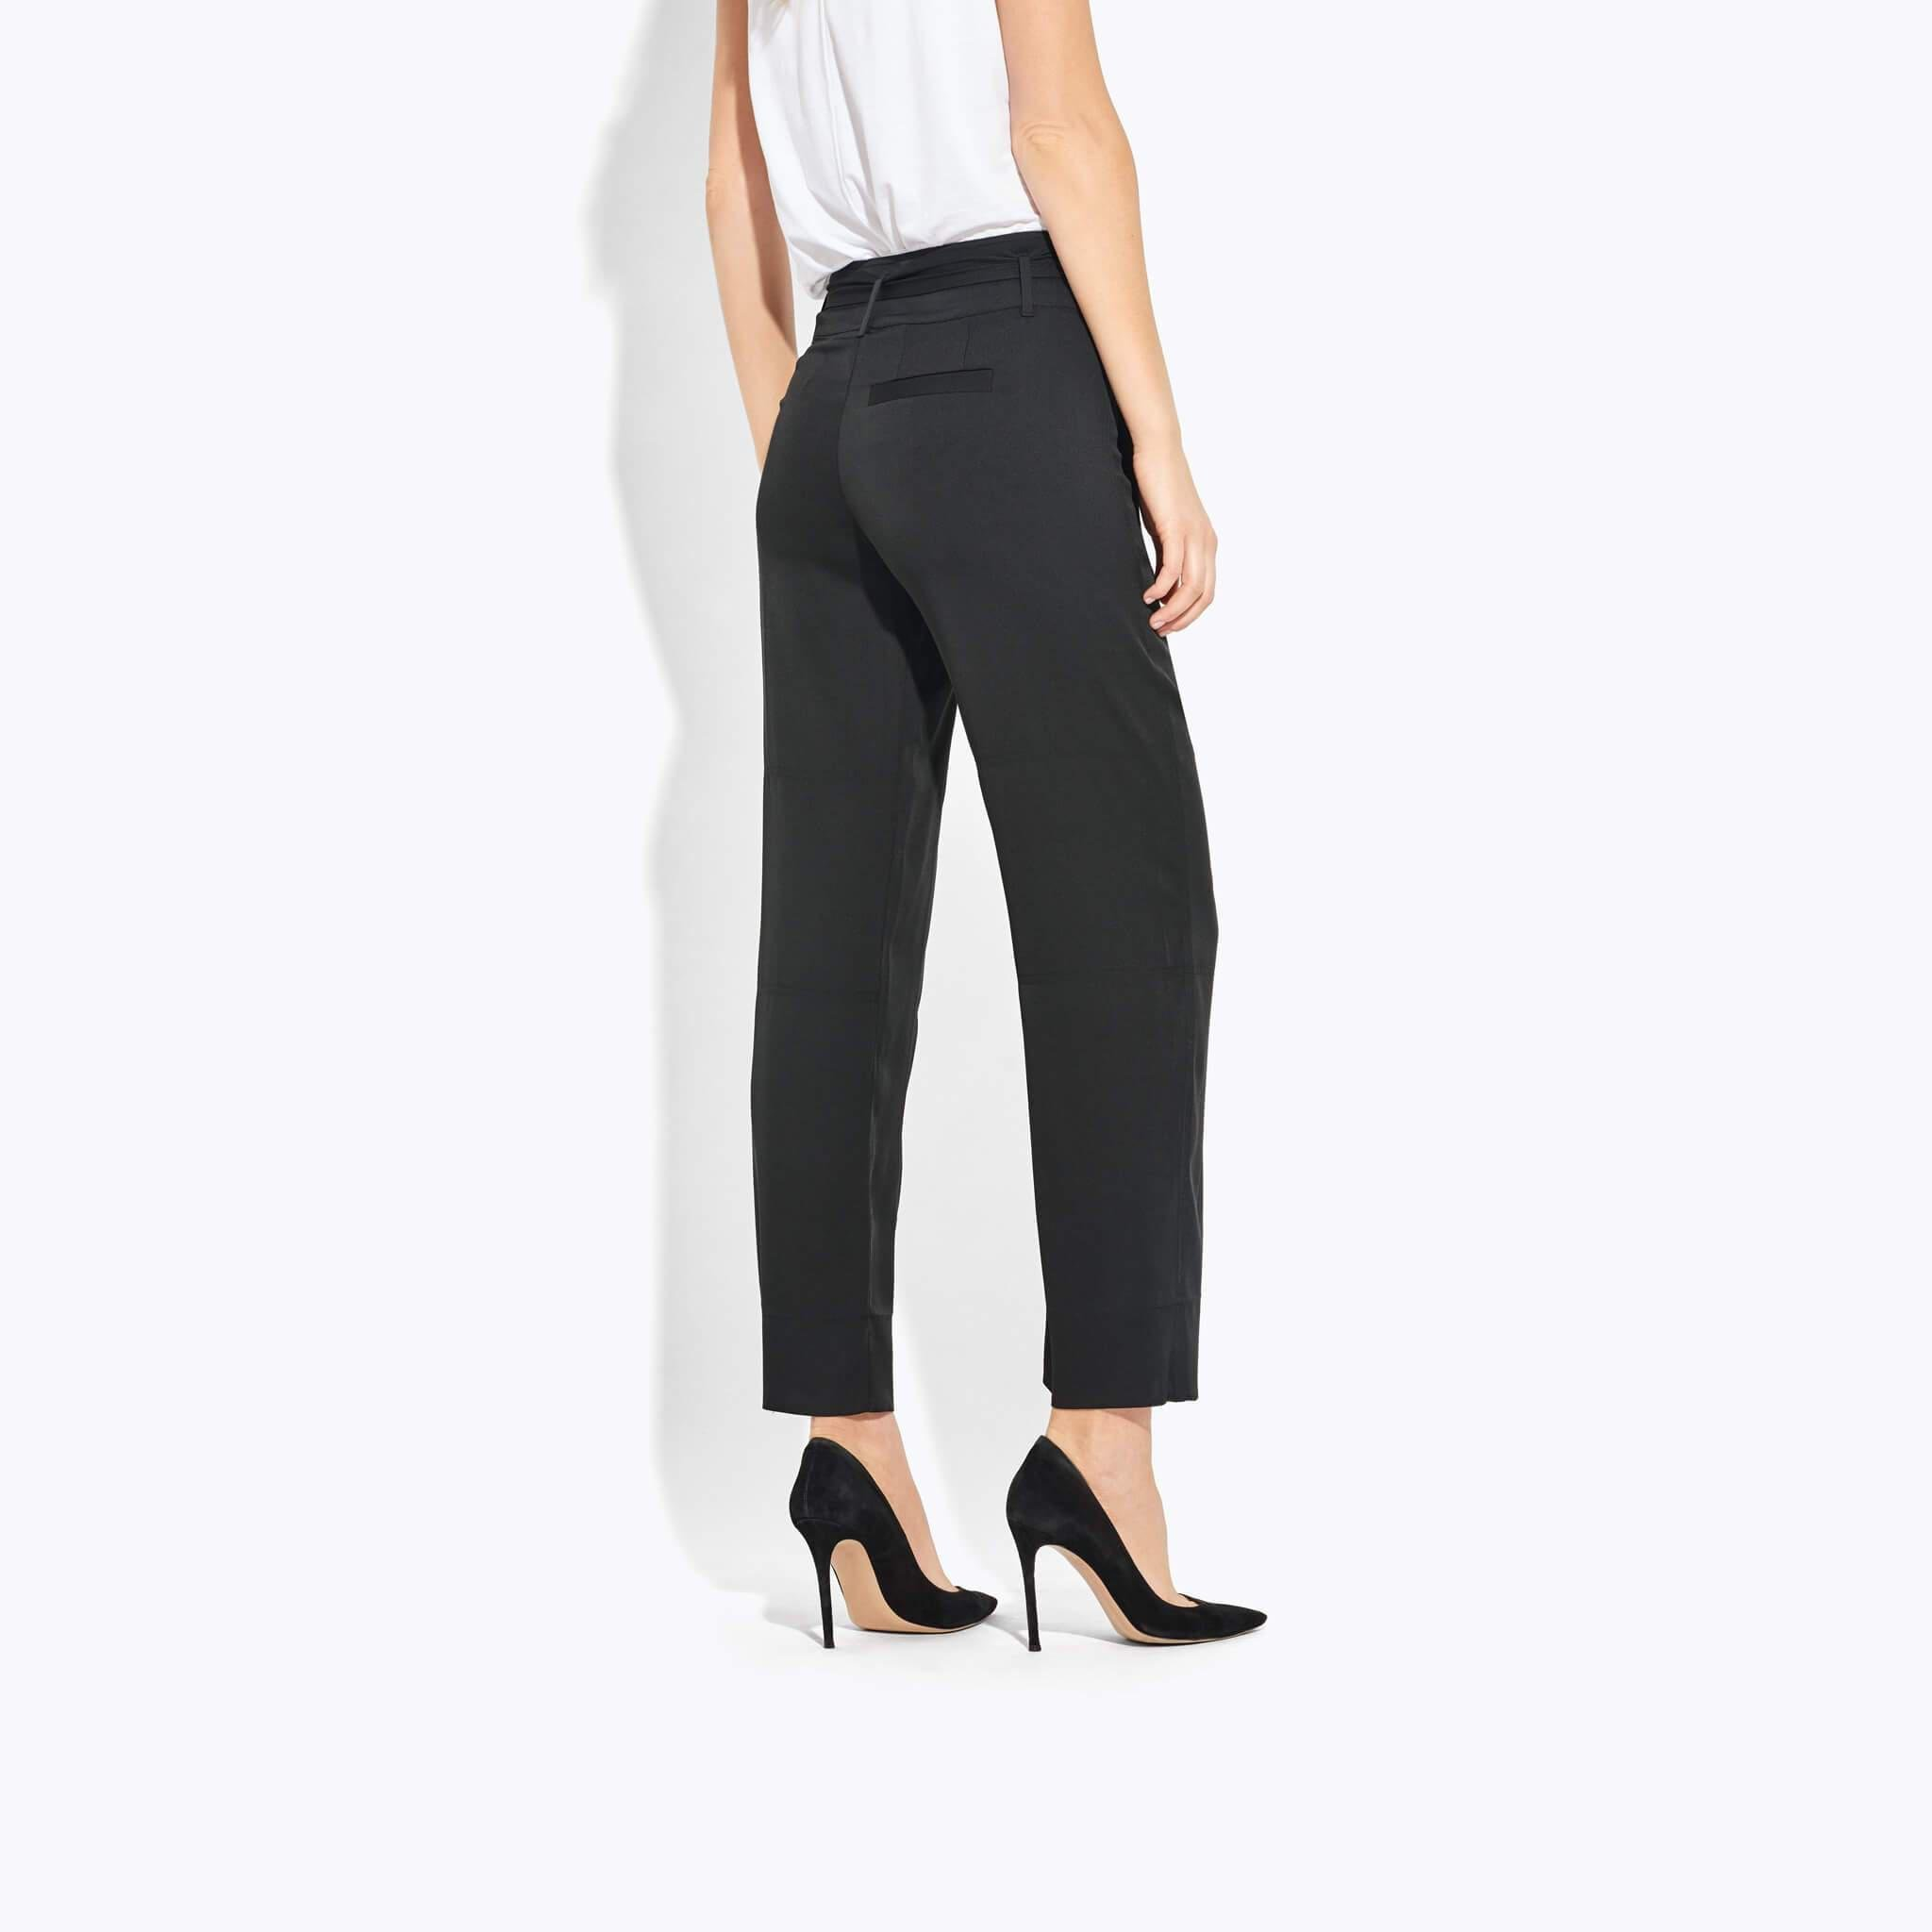 The Mirage Pant 3